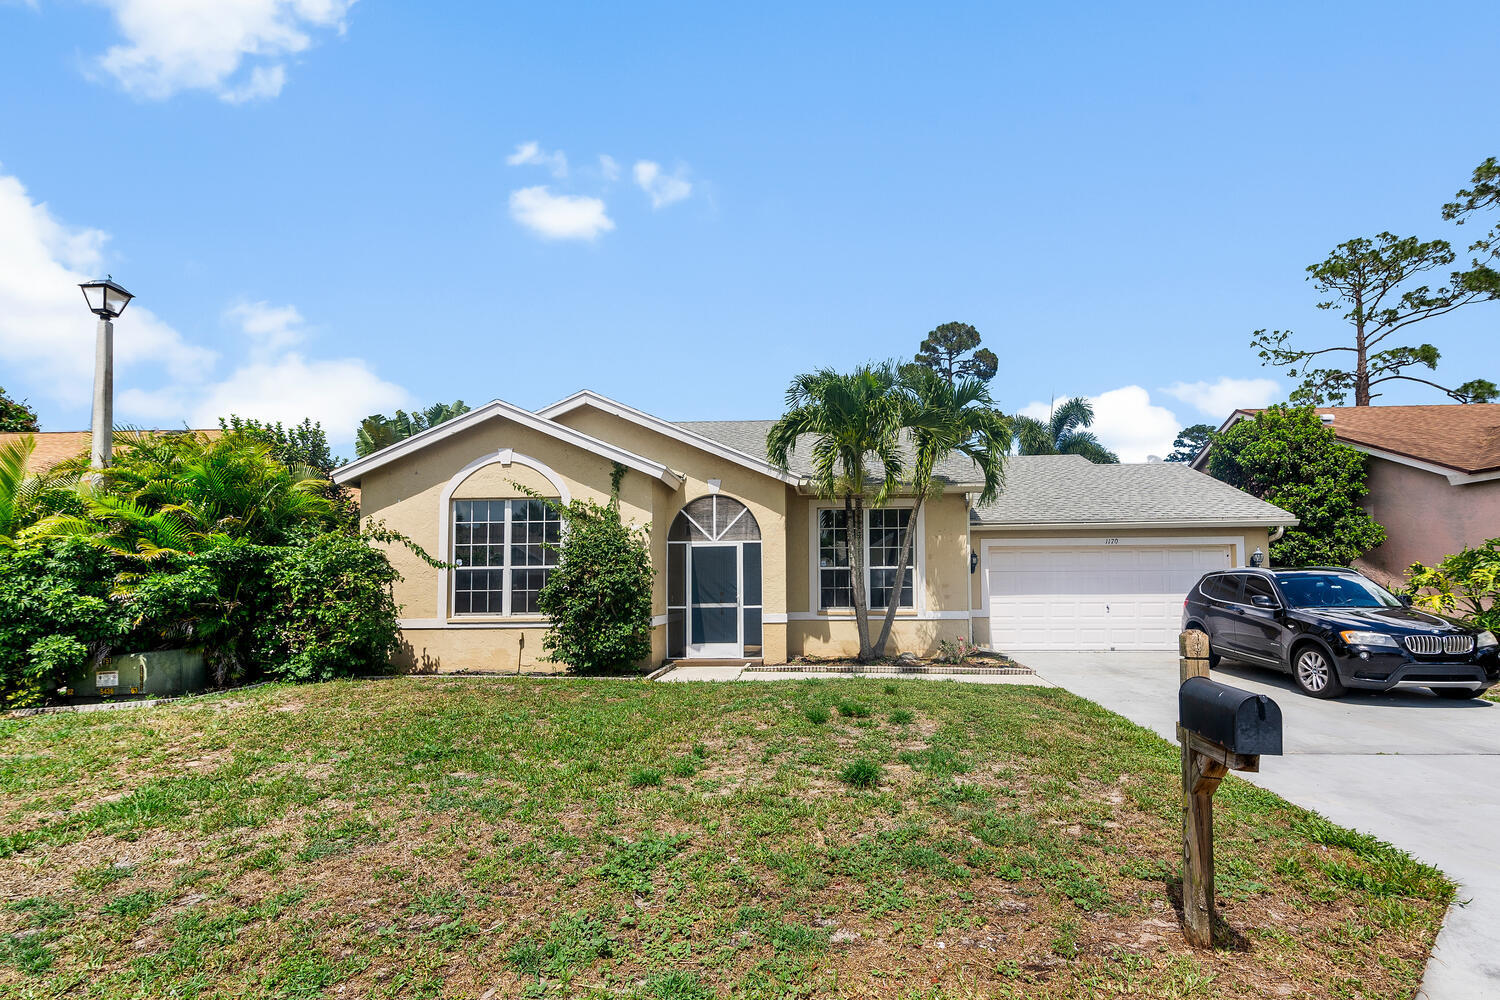 1170  Aviary Road  For Sale 10717125, FL